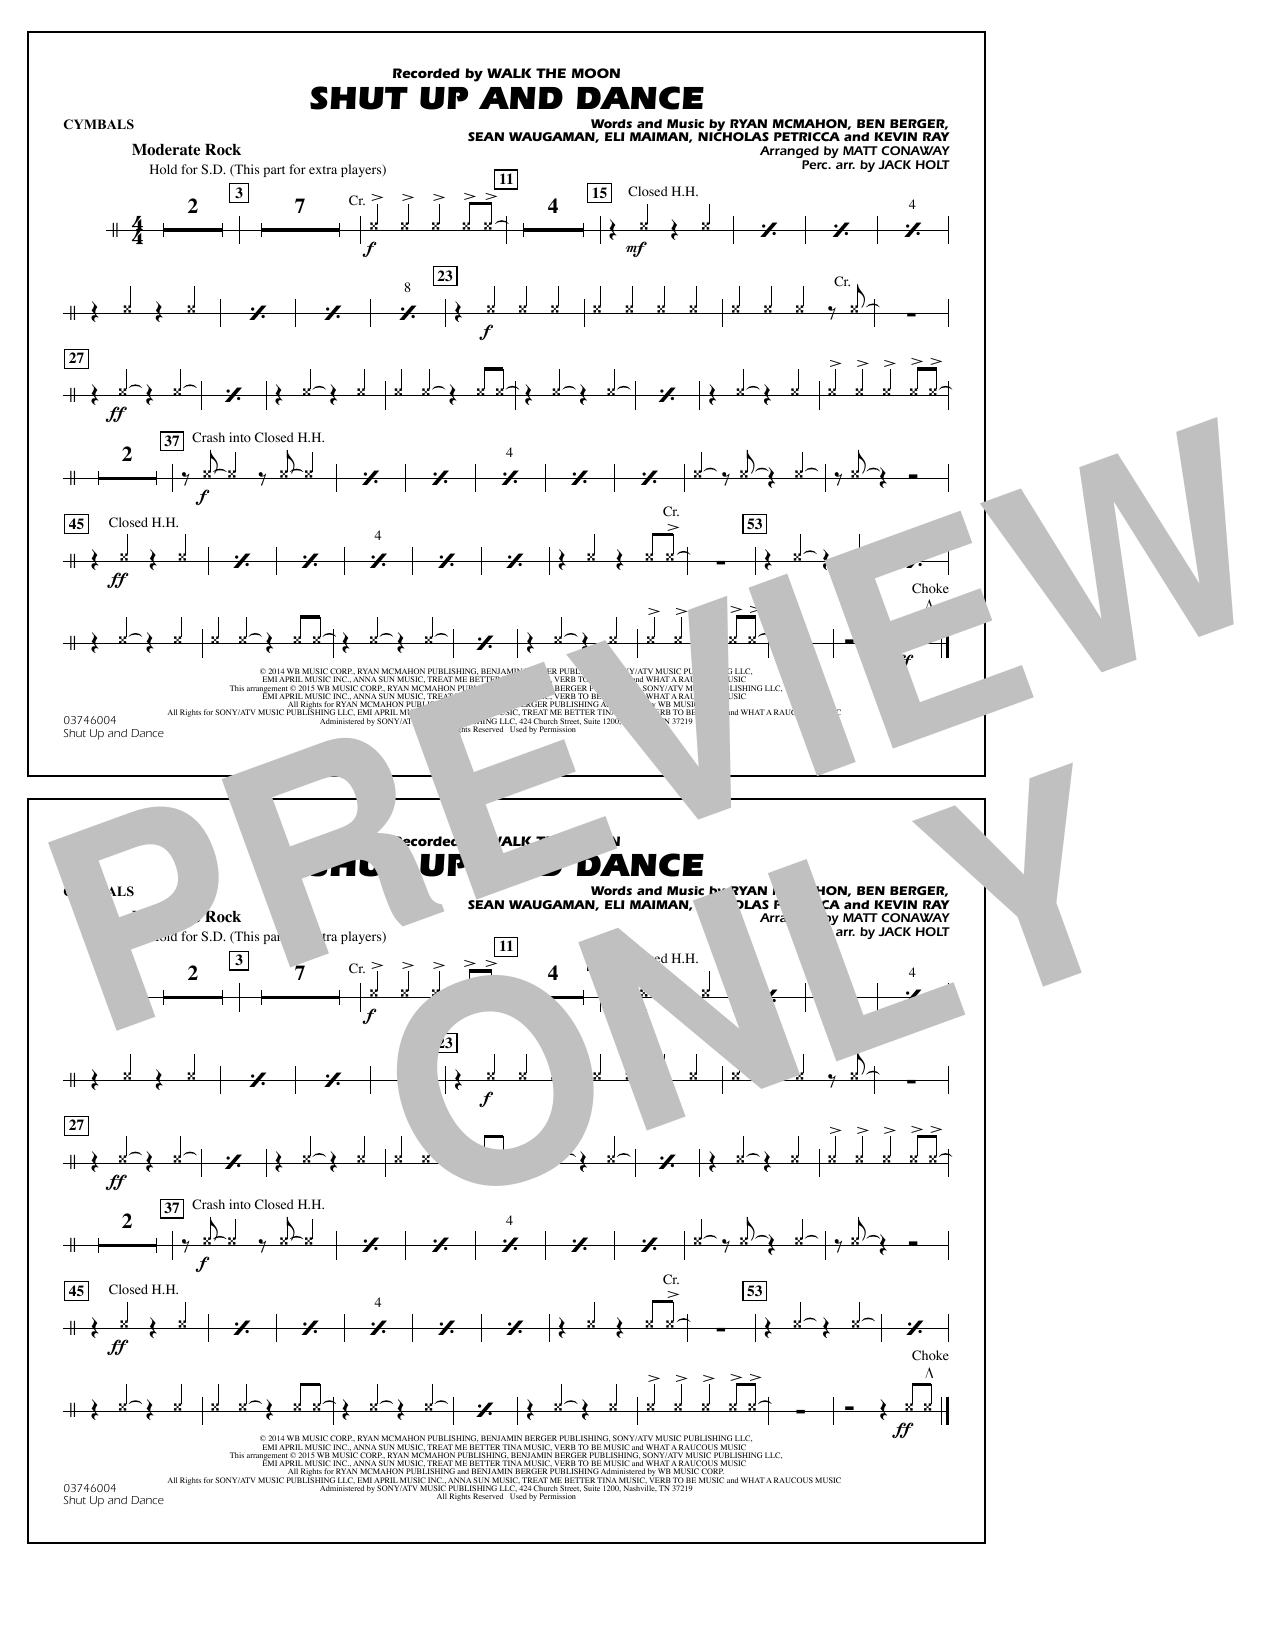 Walk The Moon Shut Up and Dance (Arr. Matt Conaway) - Cymbals sheet music notes and chords